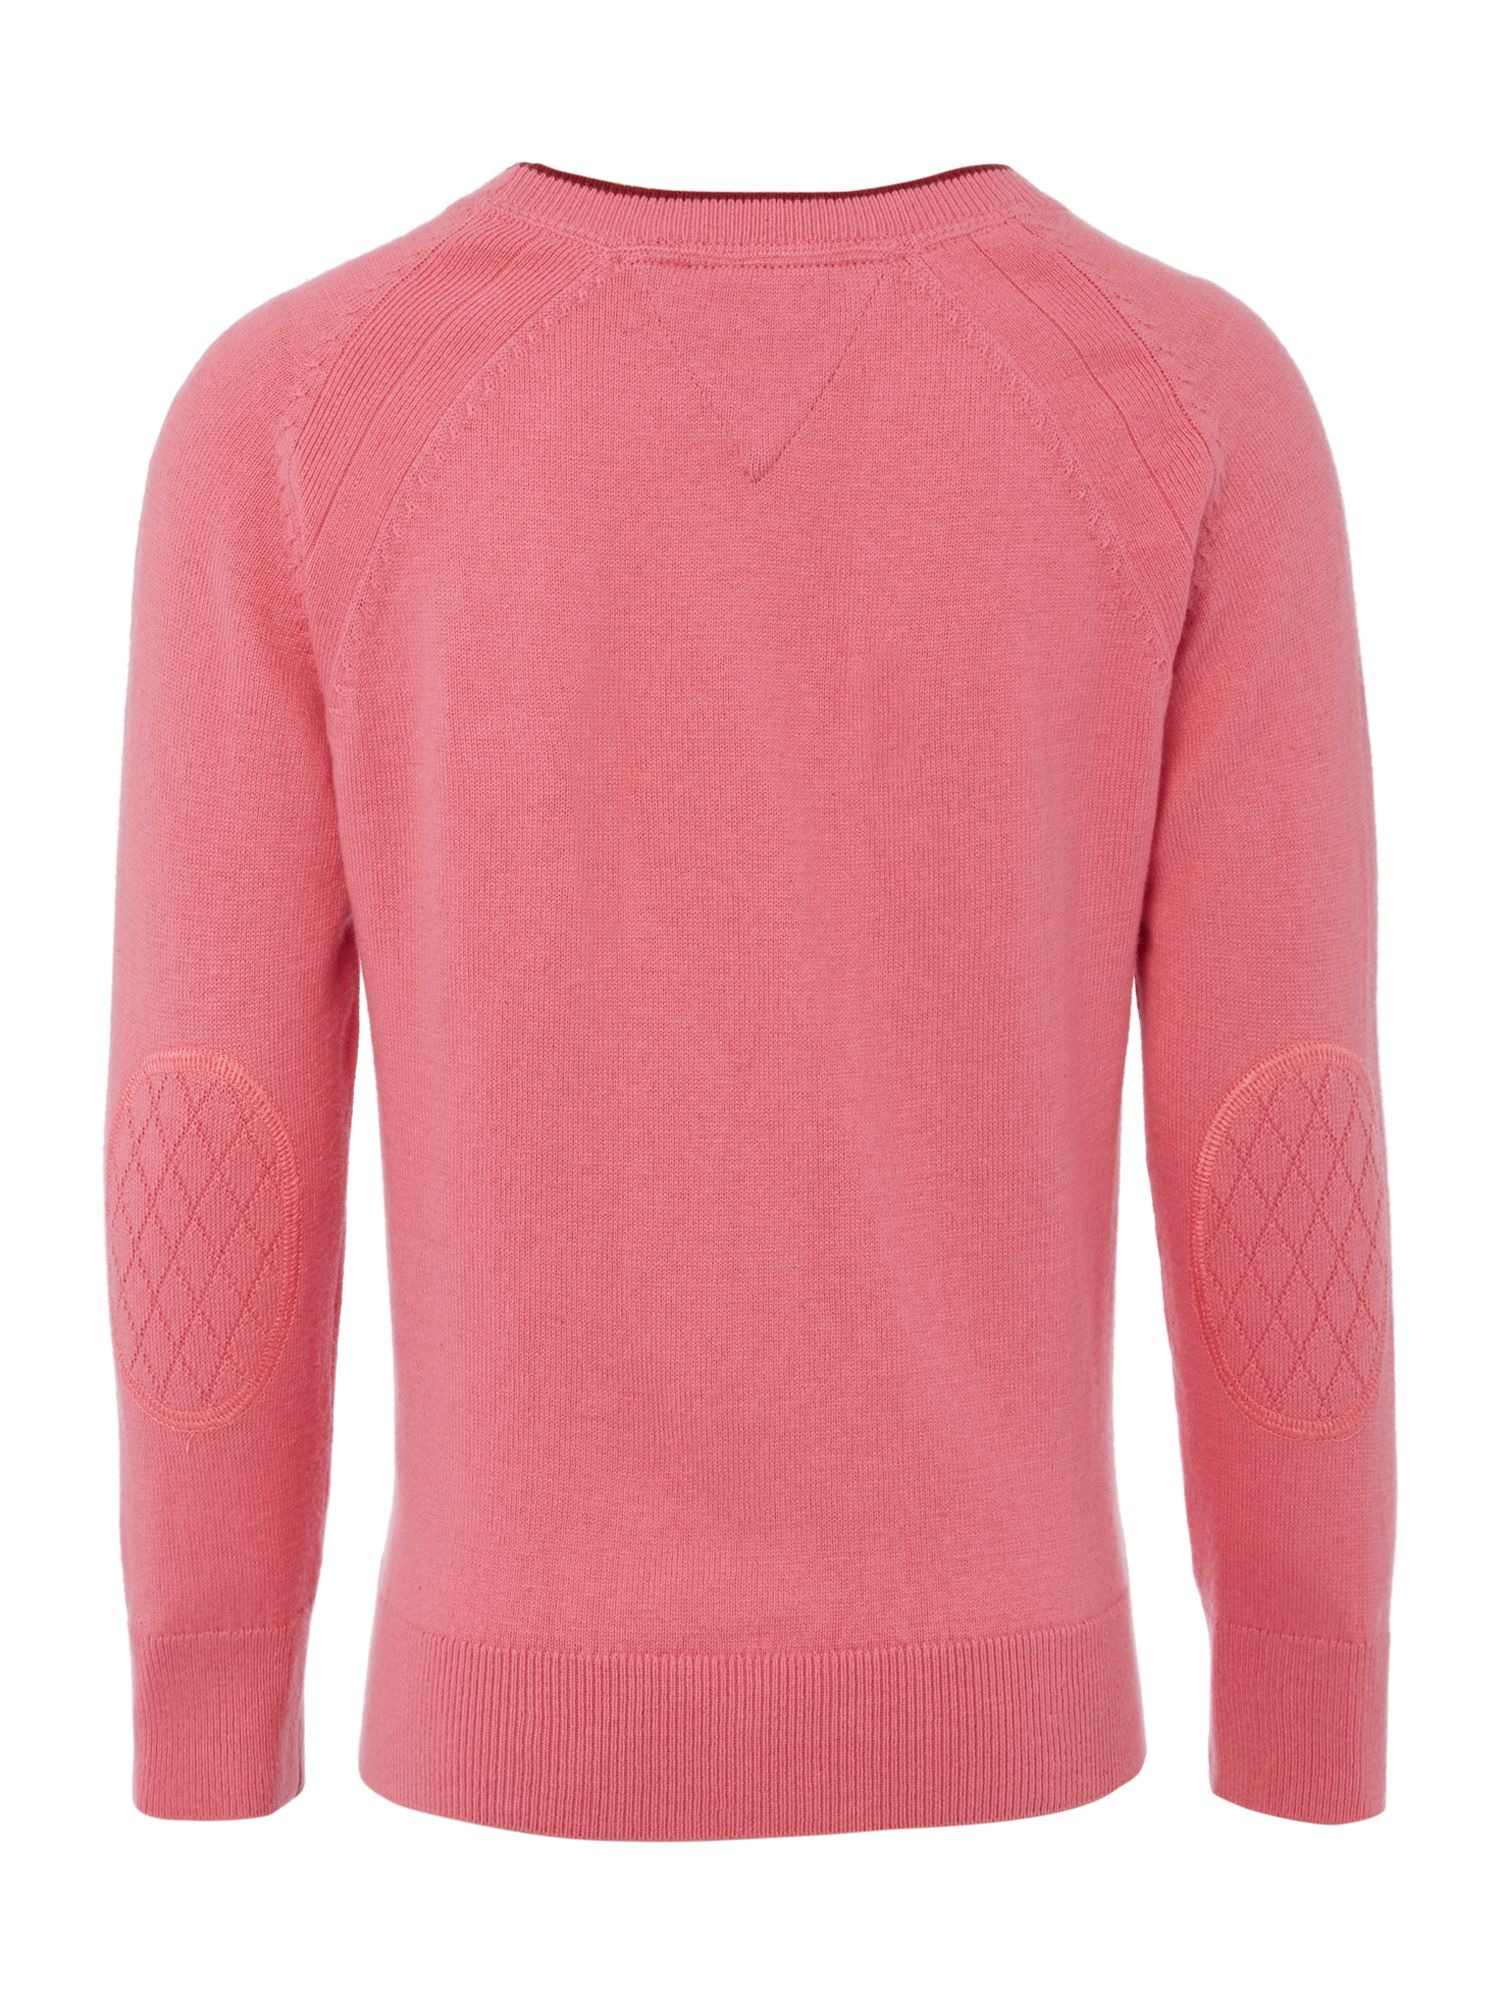 Boys cashmere knitted sweater